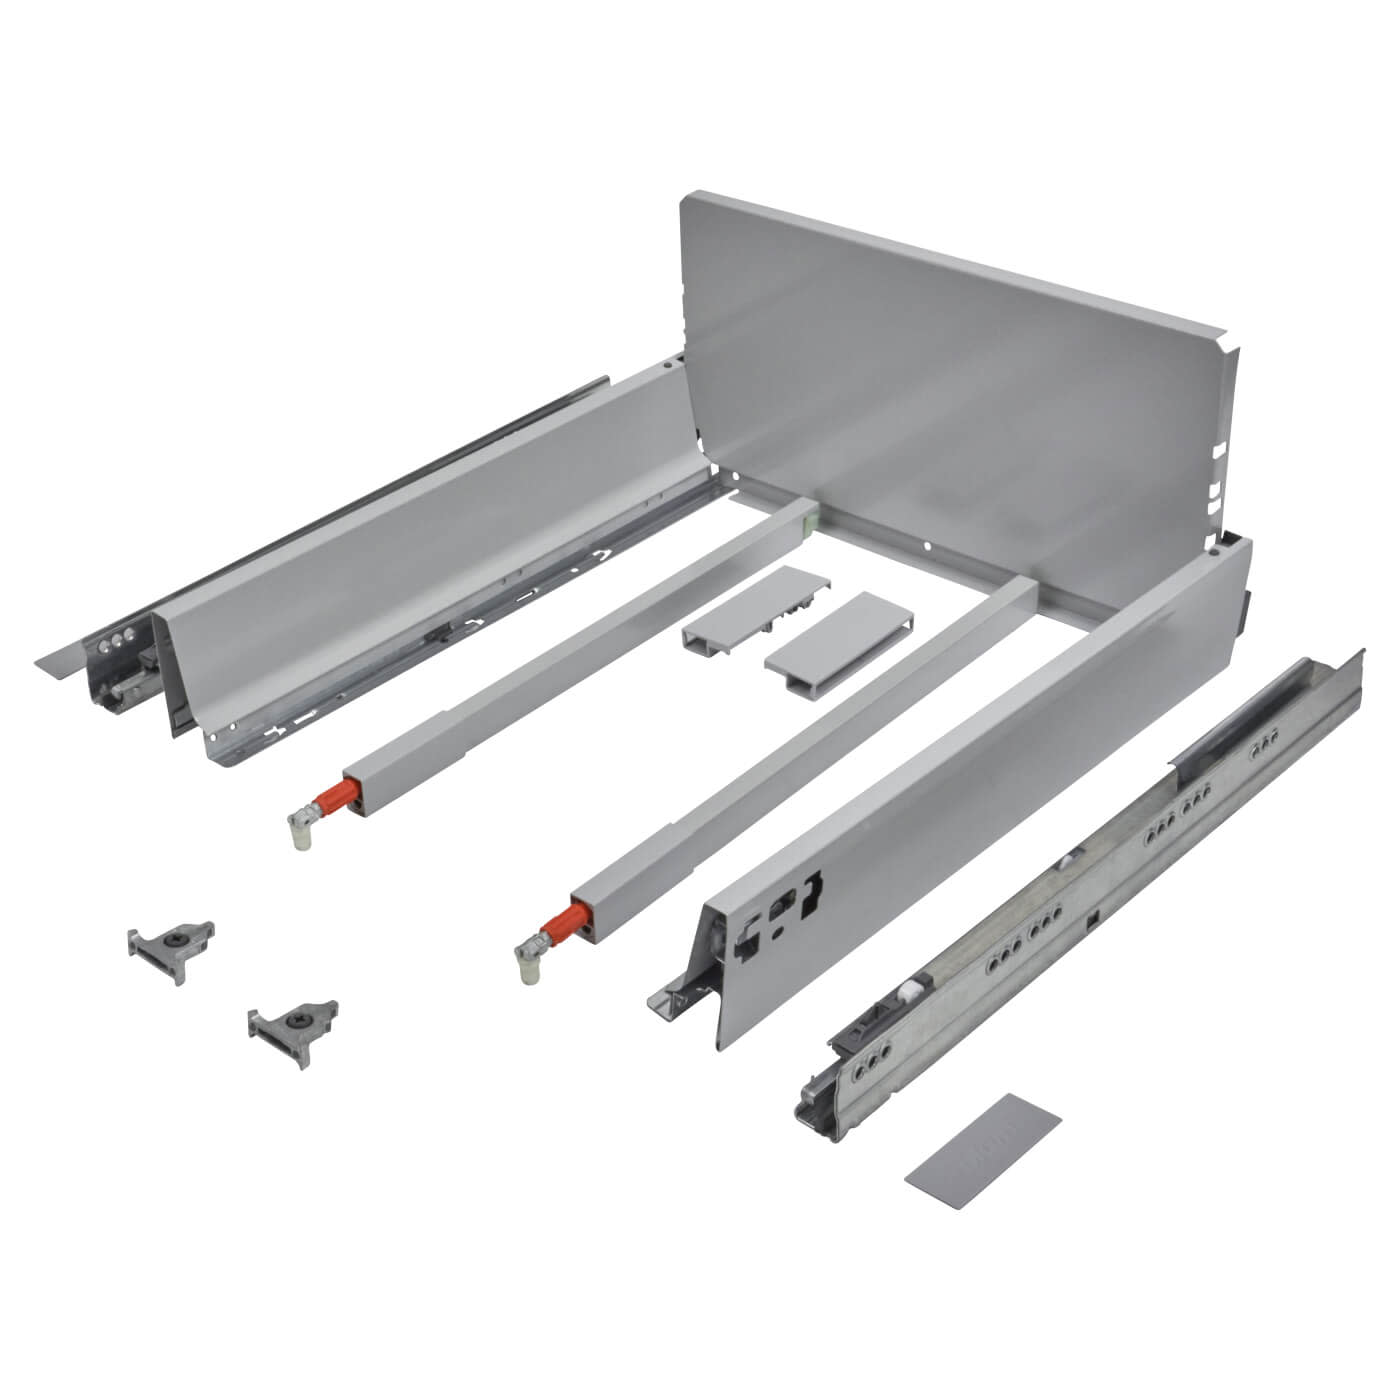 Blum TANDEMBOX ANTARO Pan Drawer - BLUMOTION Soft Close - (H) 203mm x (D) 350mm x (W) 450mm - Grey)